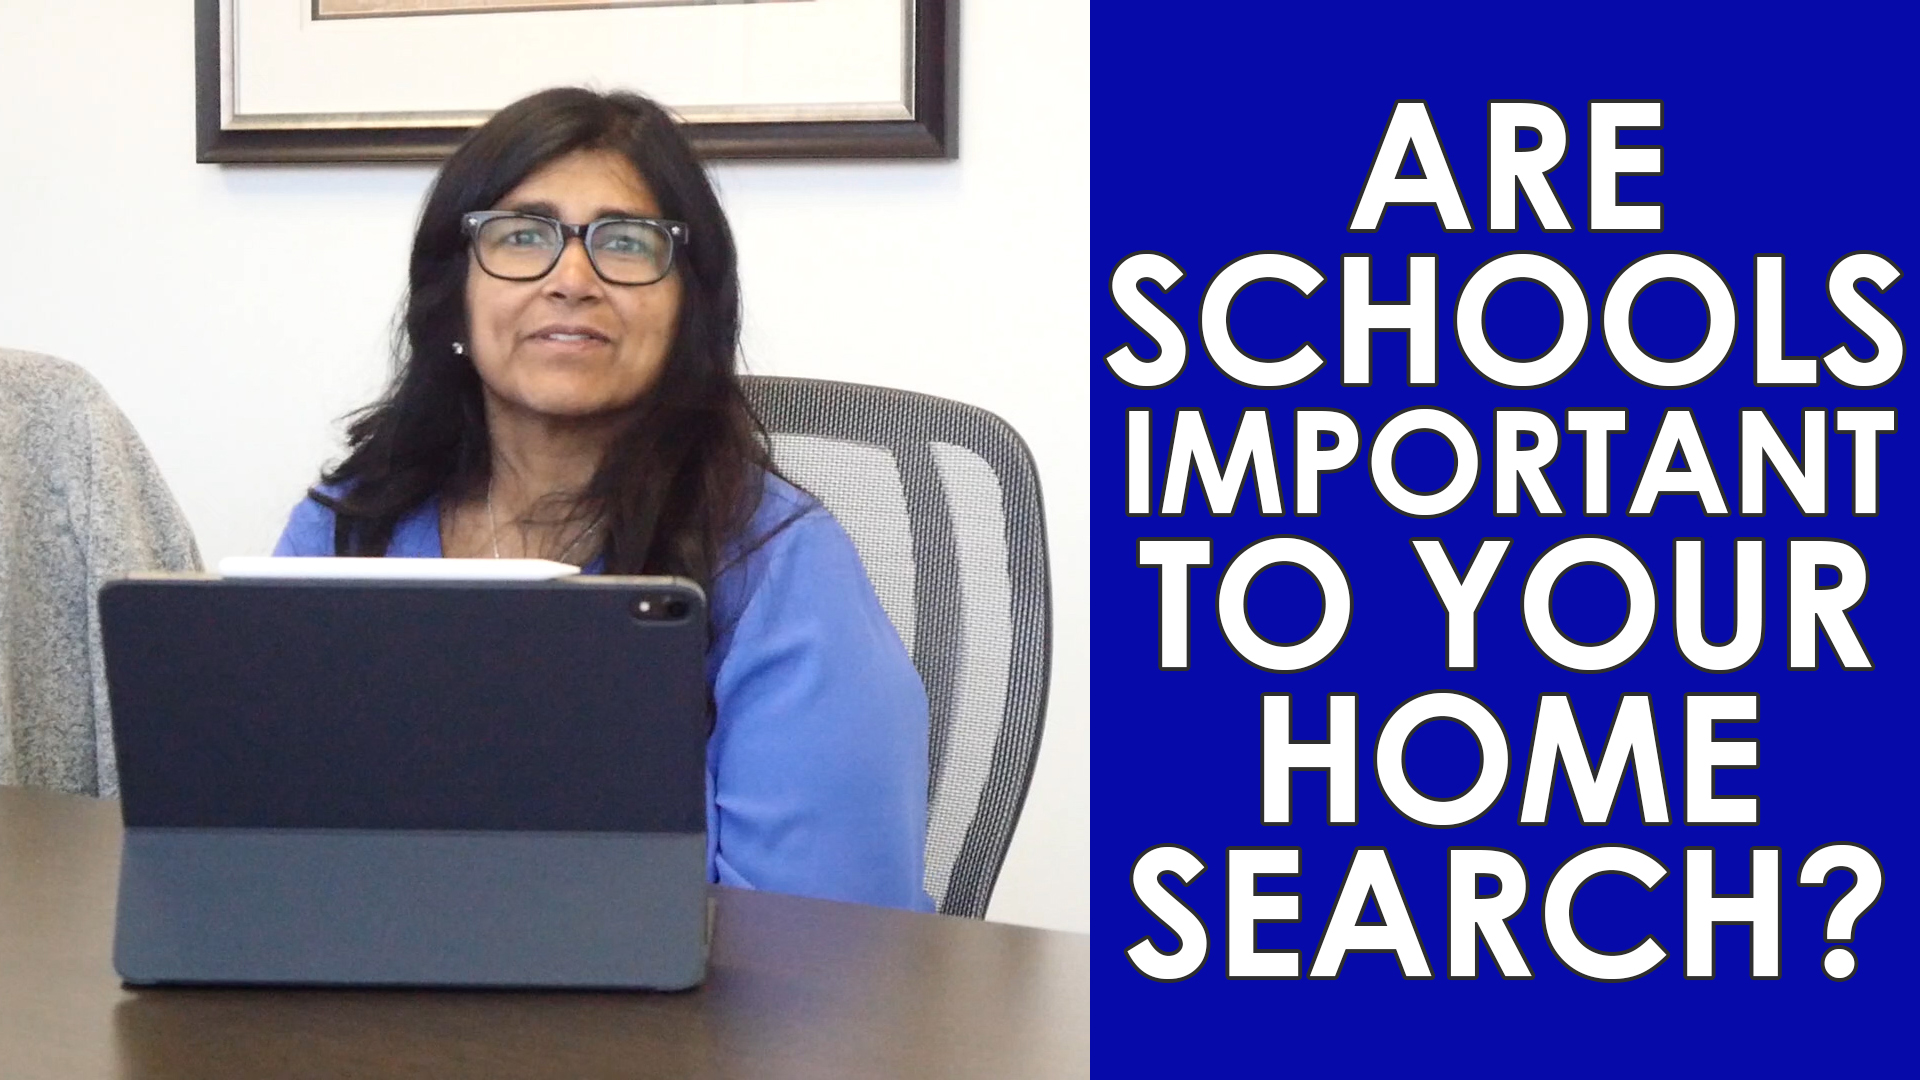 Are Schools Important to Your Home Search?